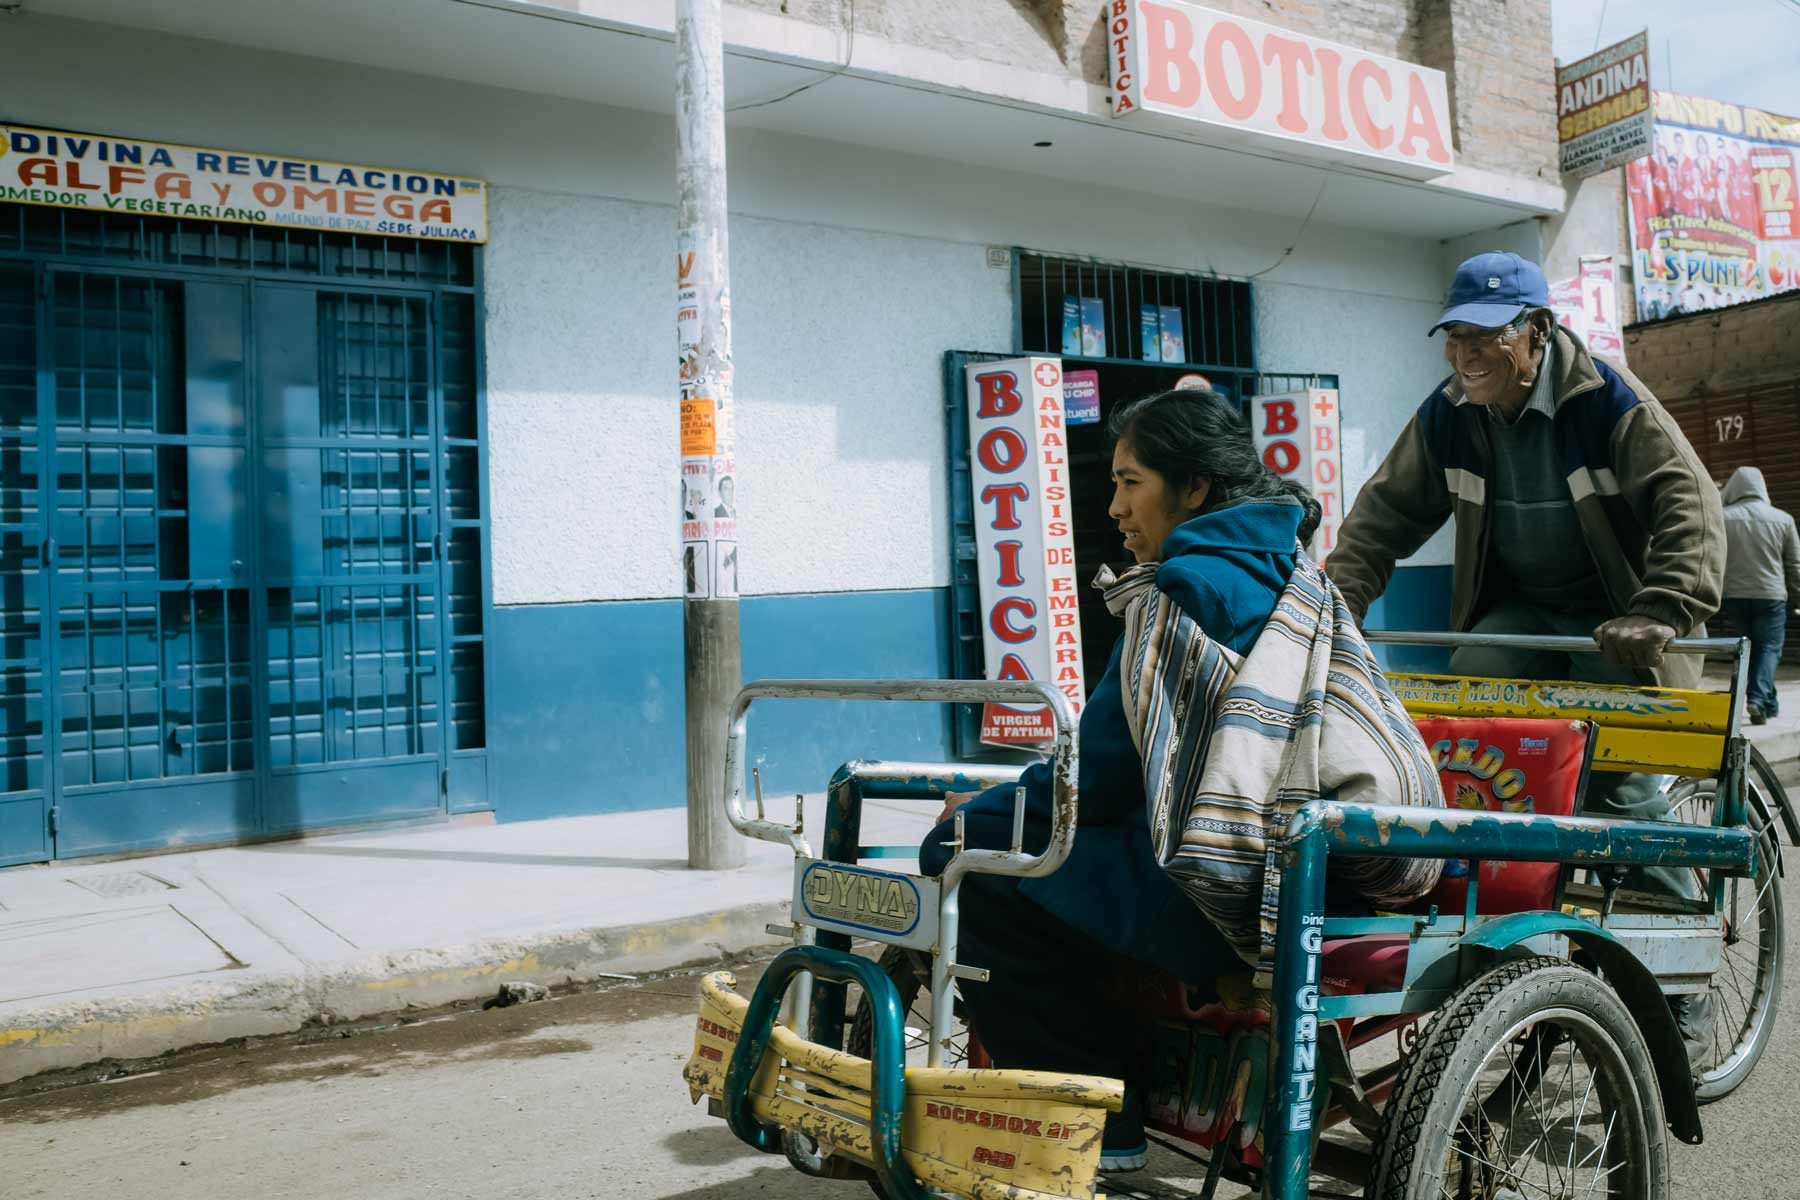 A woman rides on a bicycle taxi in Juliaca, Peru.